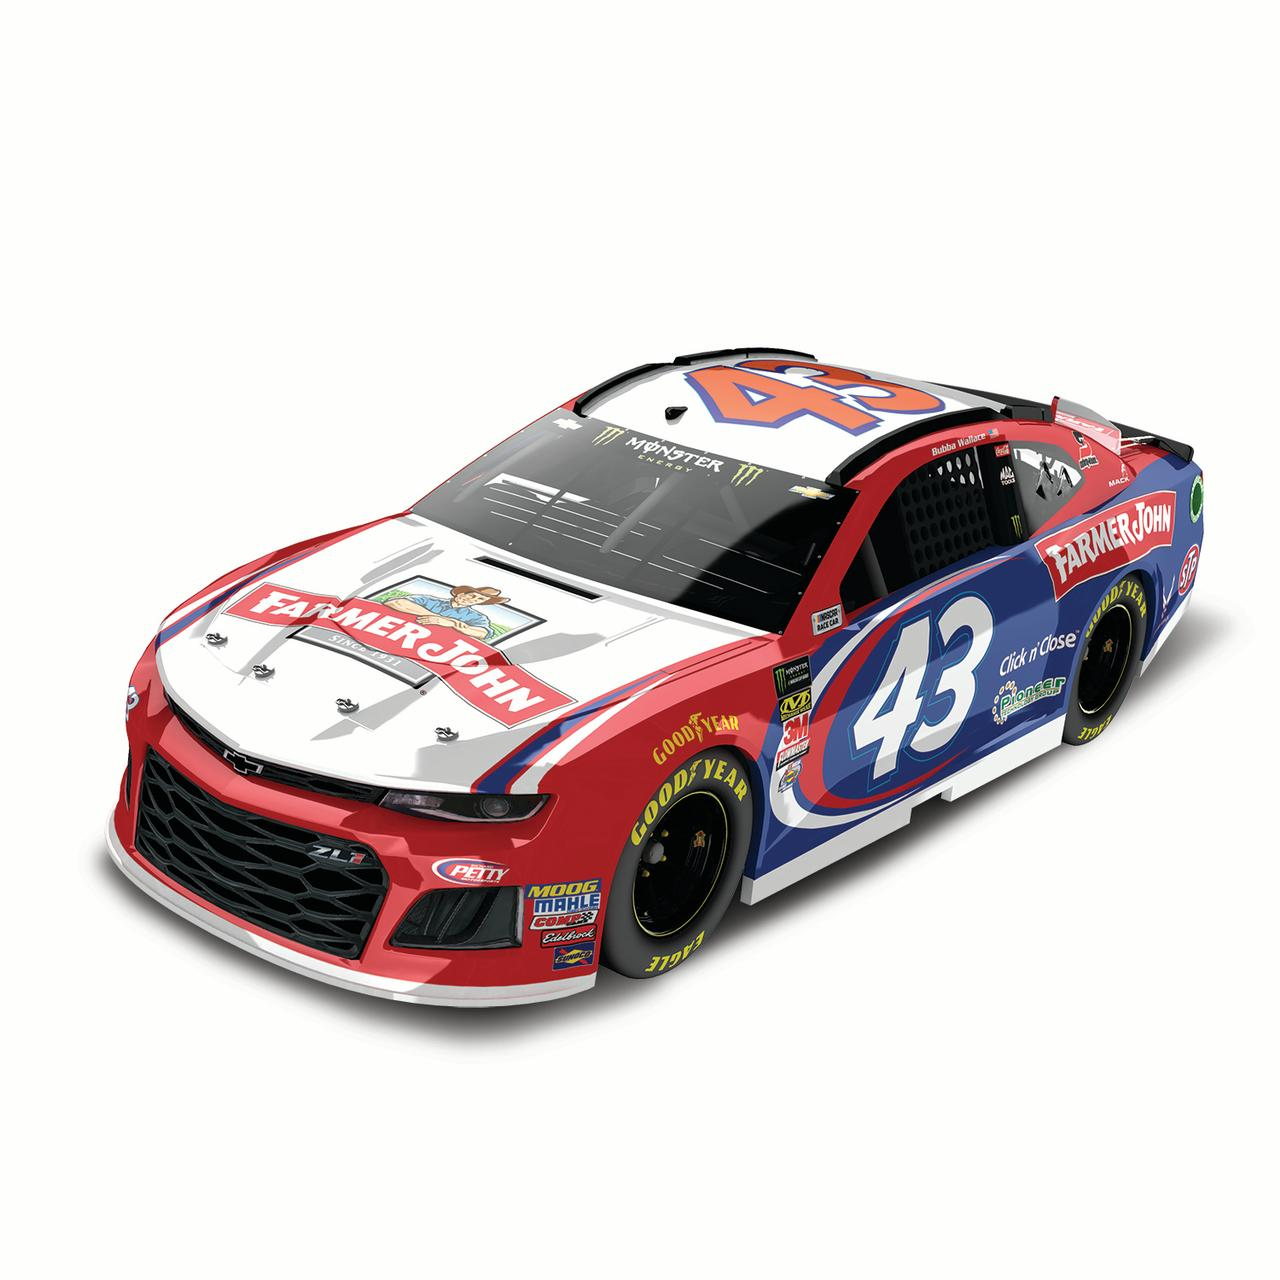 Bubba Wallace Action Racing 2018 #43 Farmer John 1:24 Regular Paint Die-Cast Chevrolet Camaro ZL1 - No Size